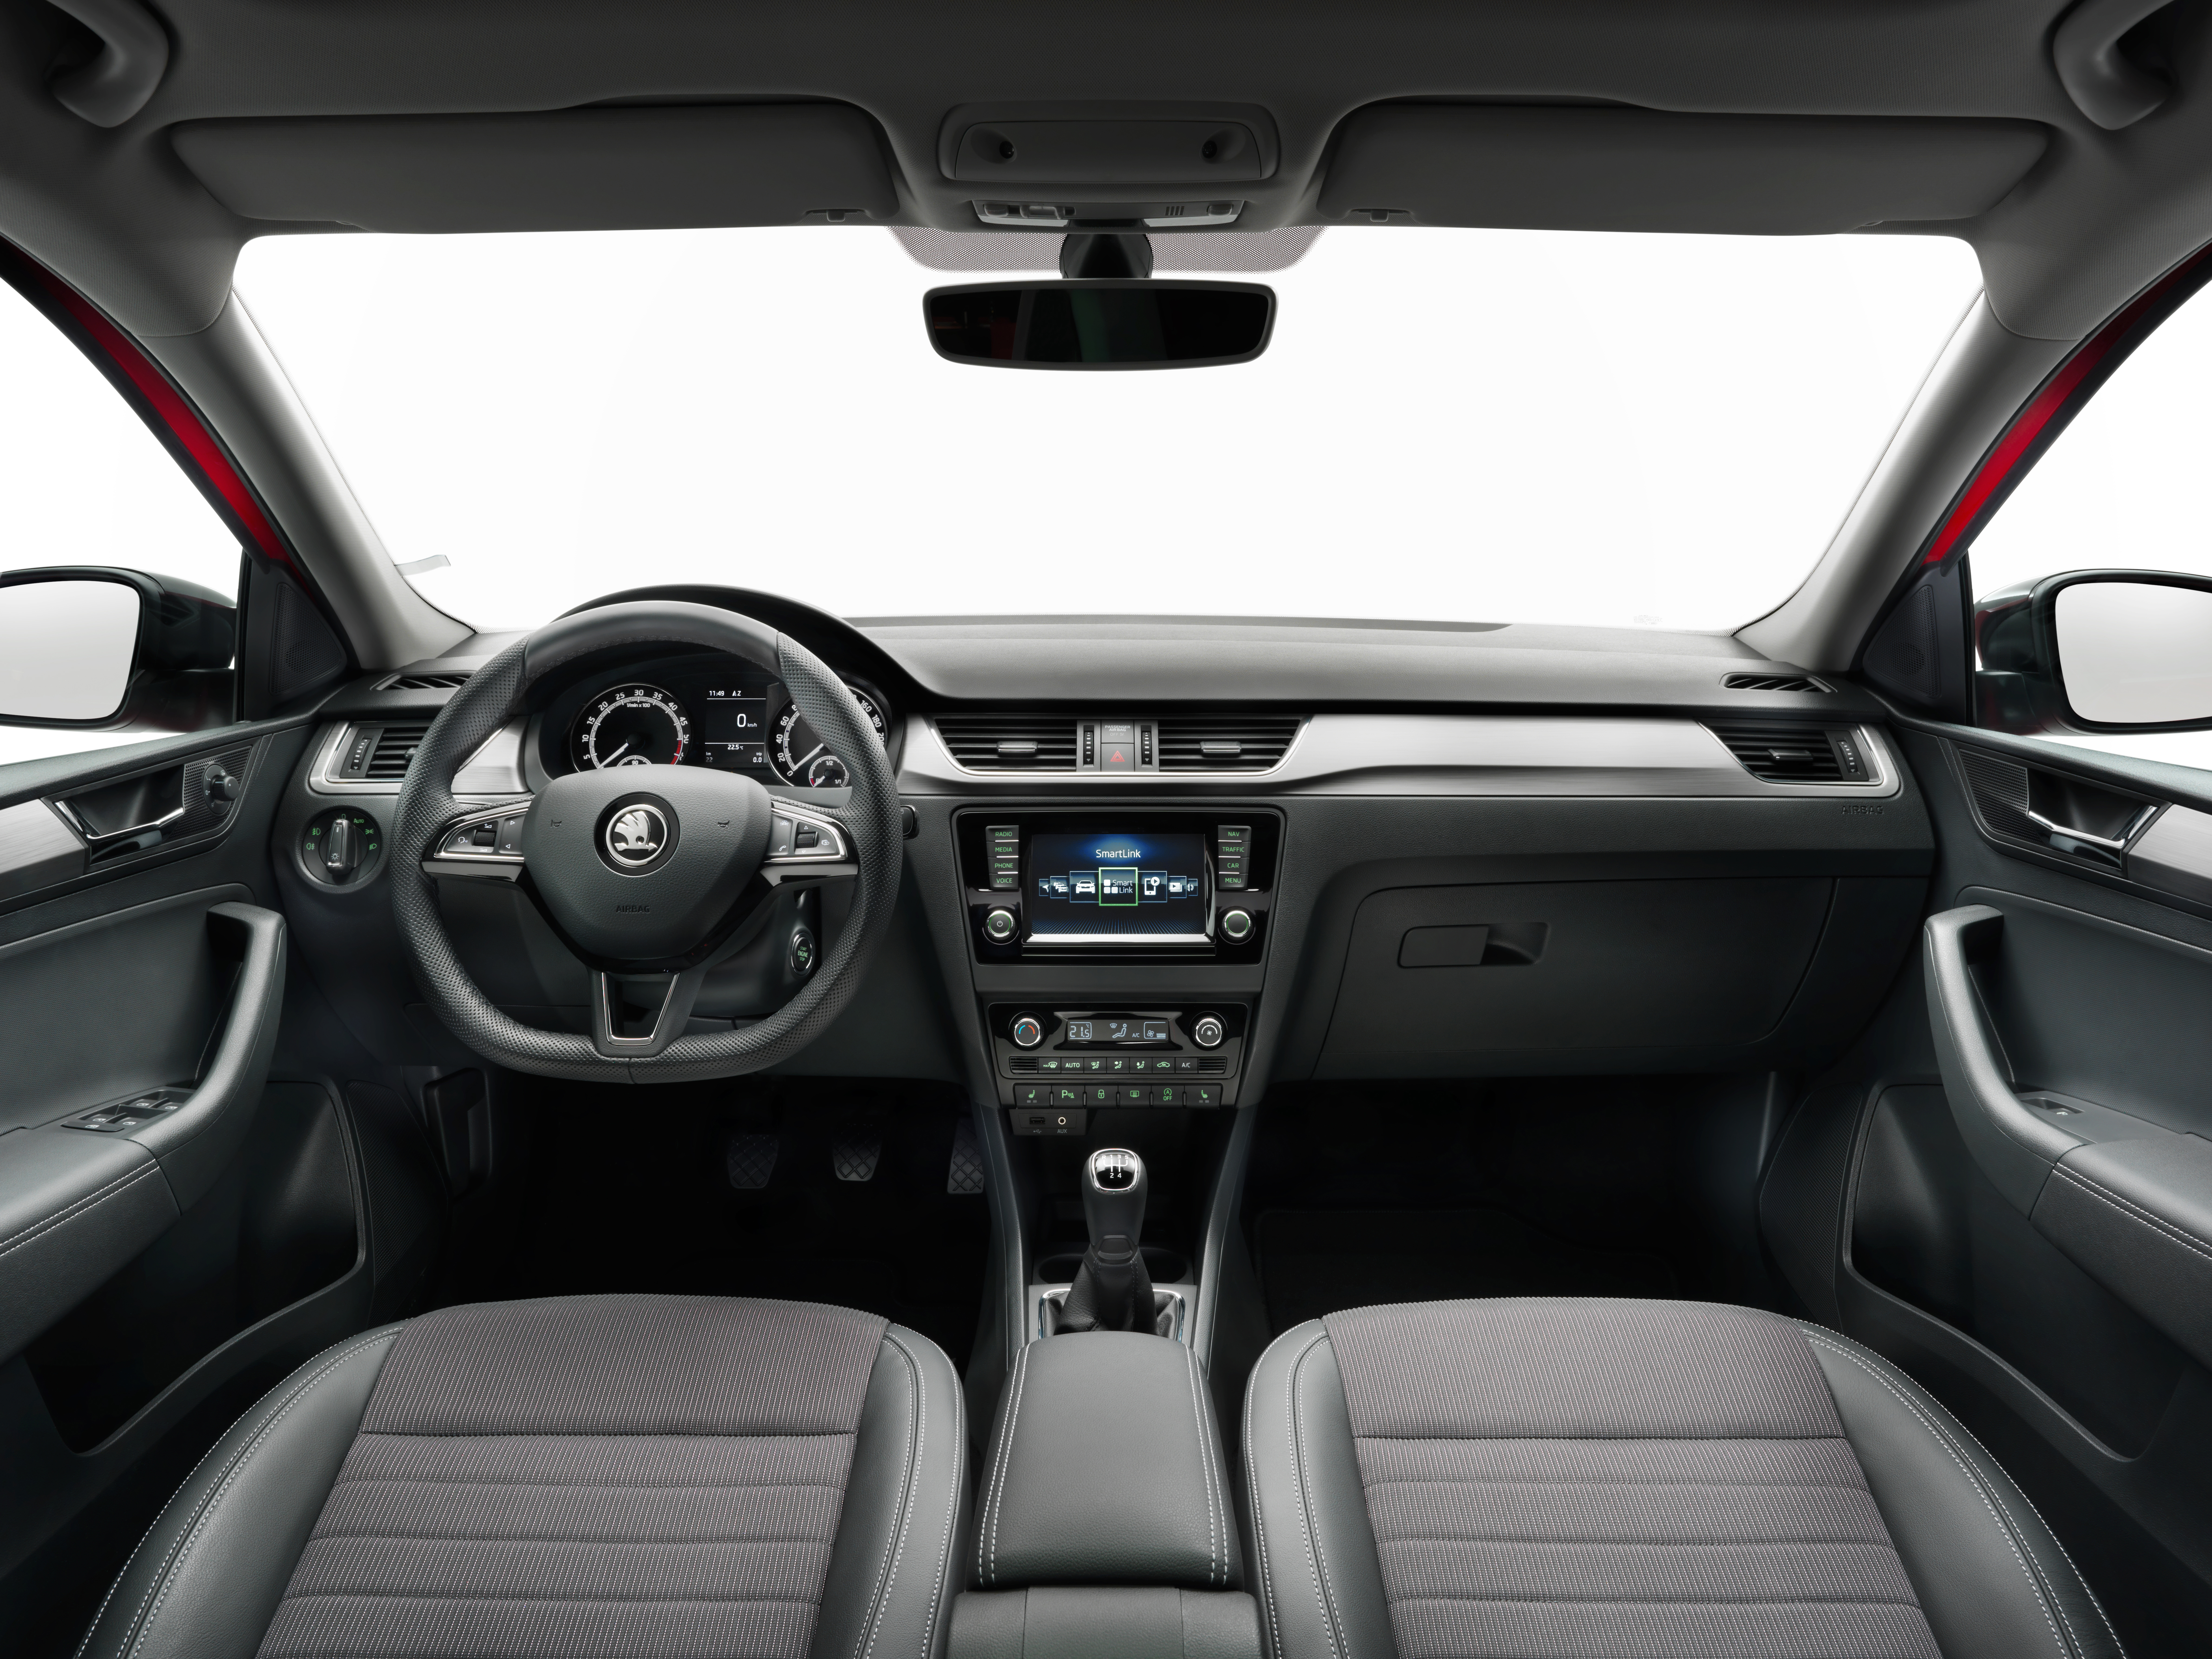 Skoda Rapid And Skoda Rapid Spaceback Optimized Interior And